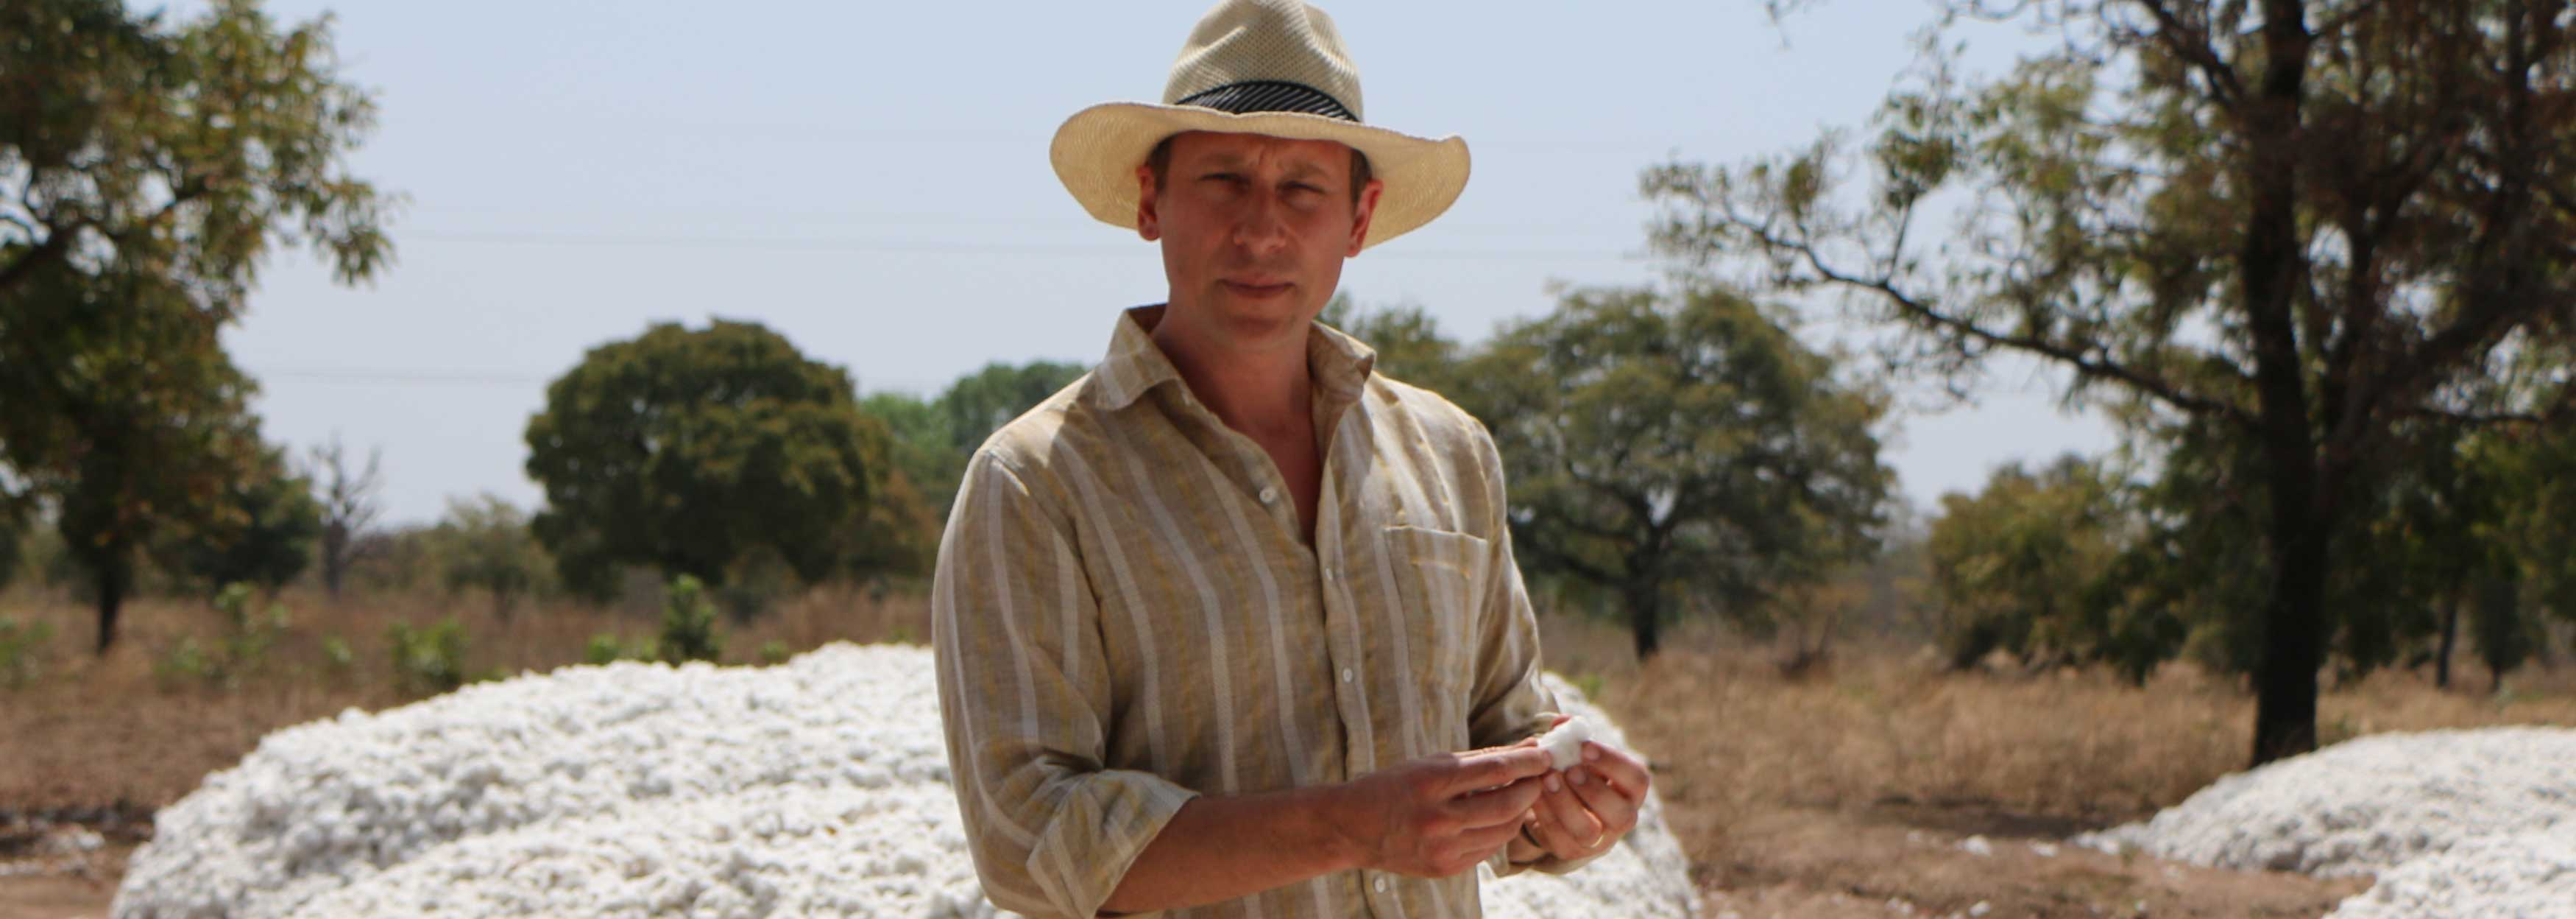 Staff member Eric Chaurette examines a pile of Bt cotton in Burkina Faso